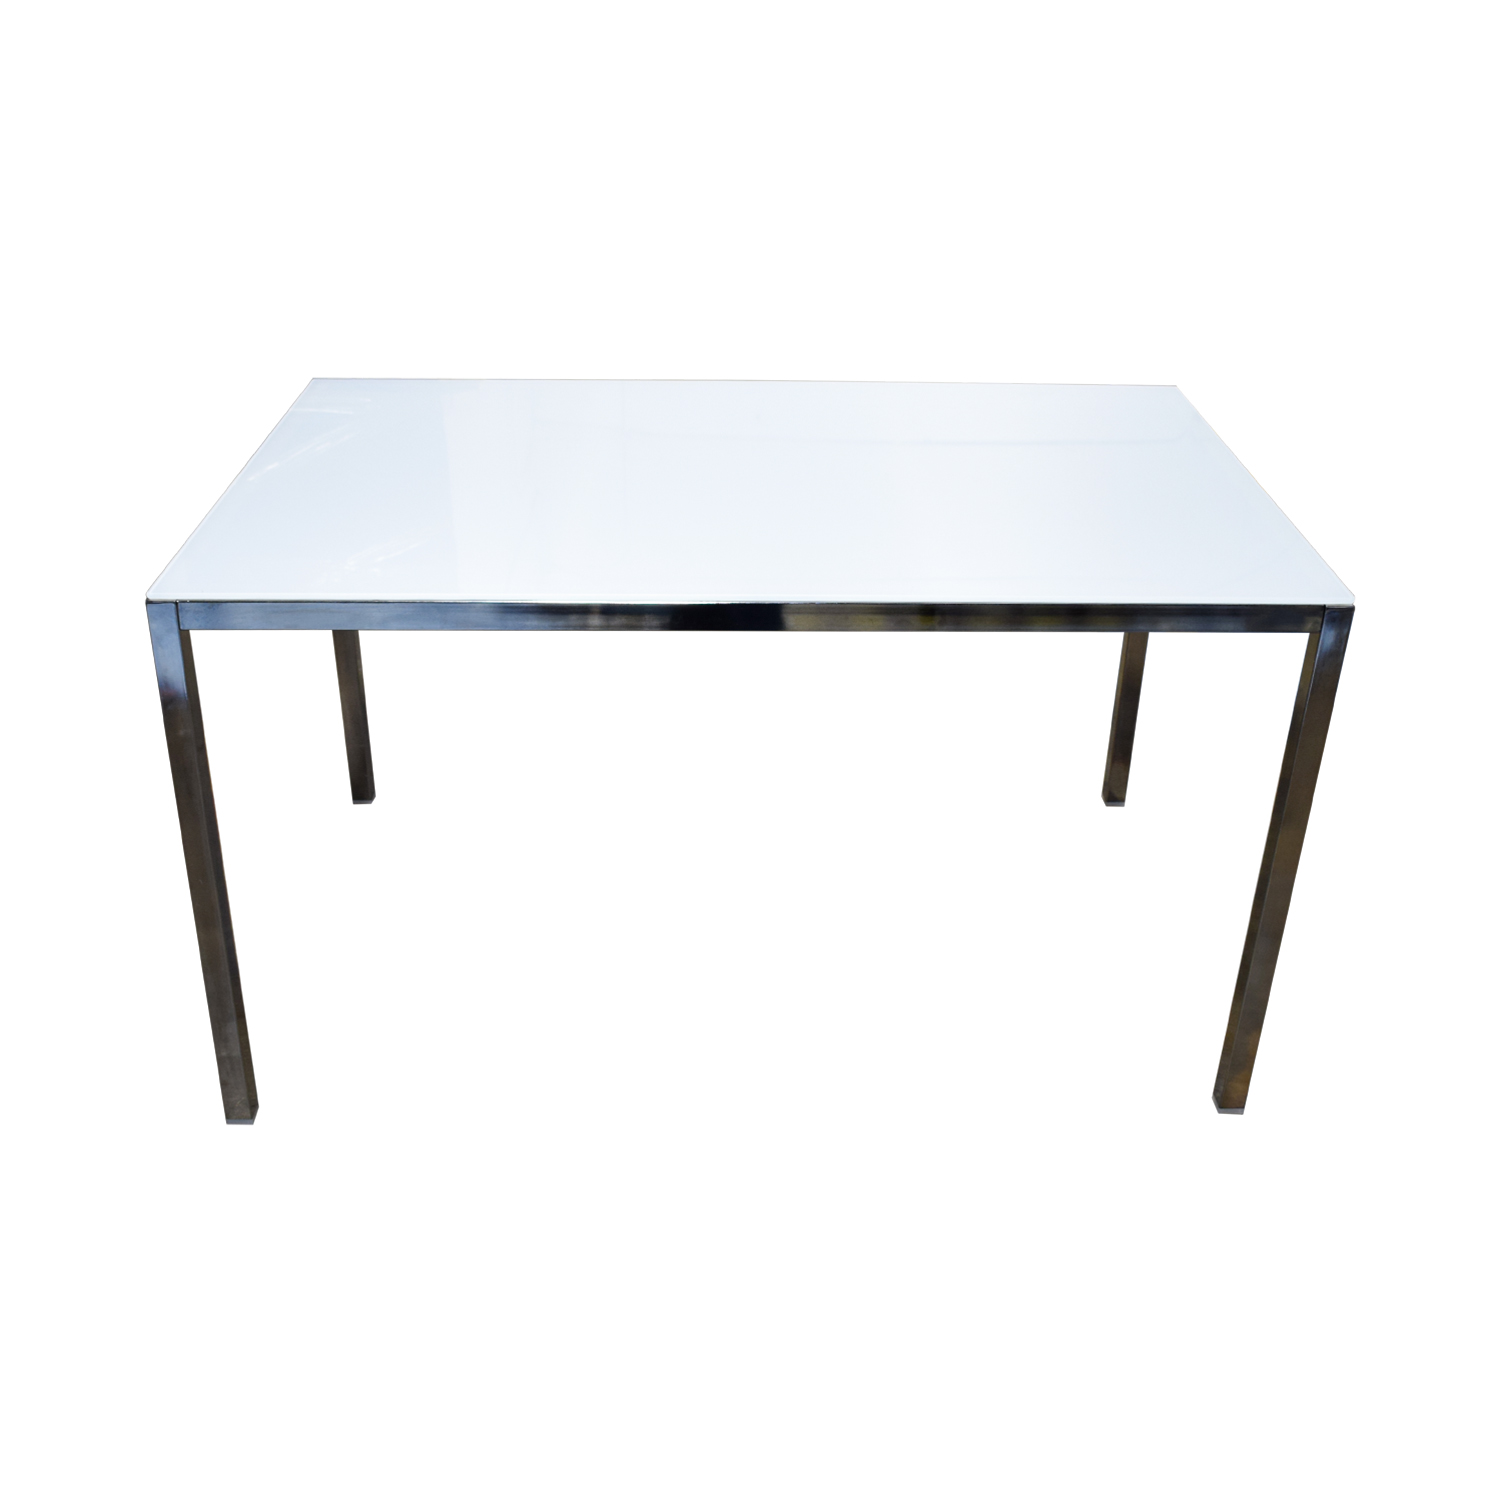 IKEA IKEA White Top and Chrome Base Dining Table for sale